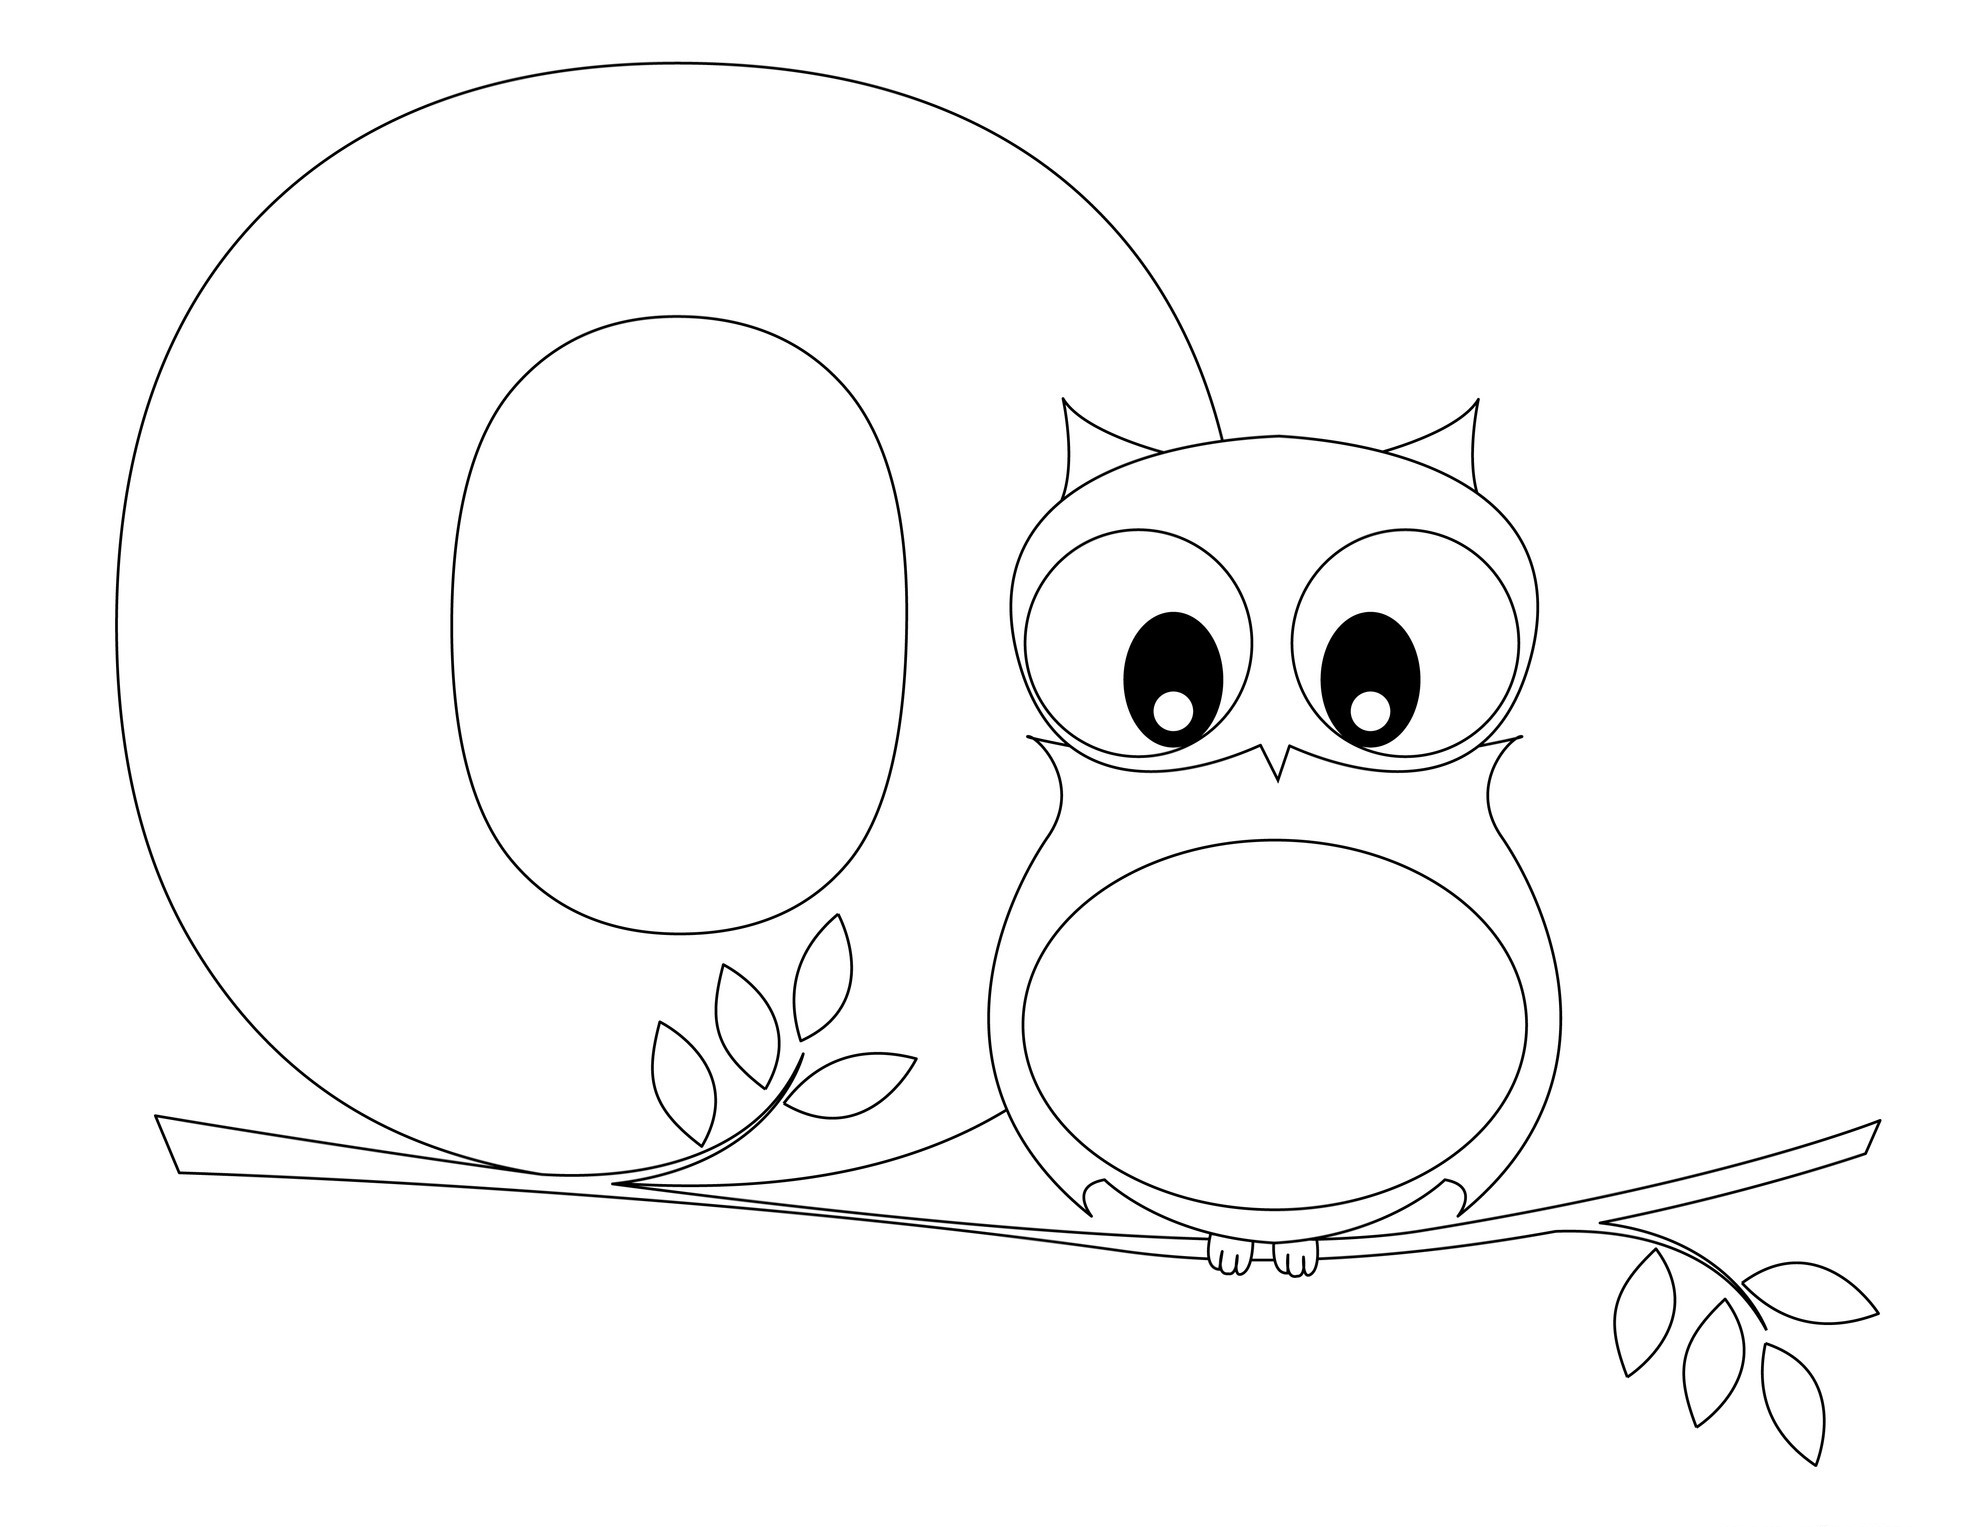 o coloring sheets letter o with shock eyes coloring page best place to color sheets coloring o